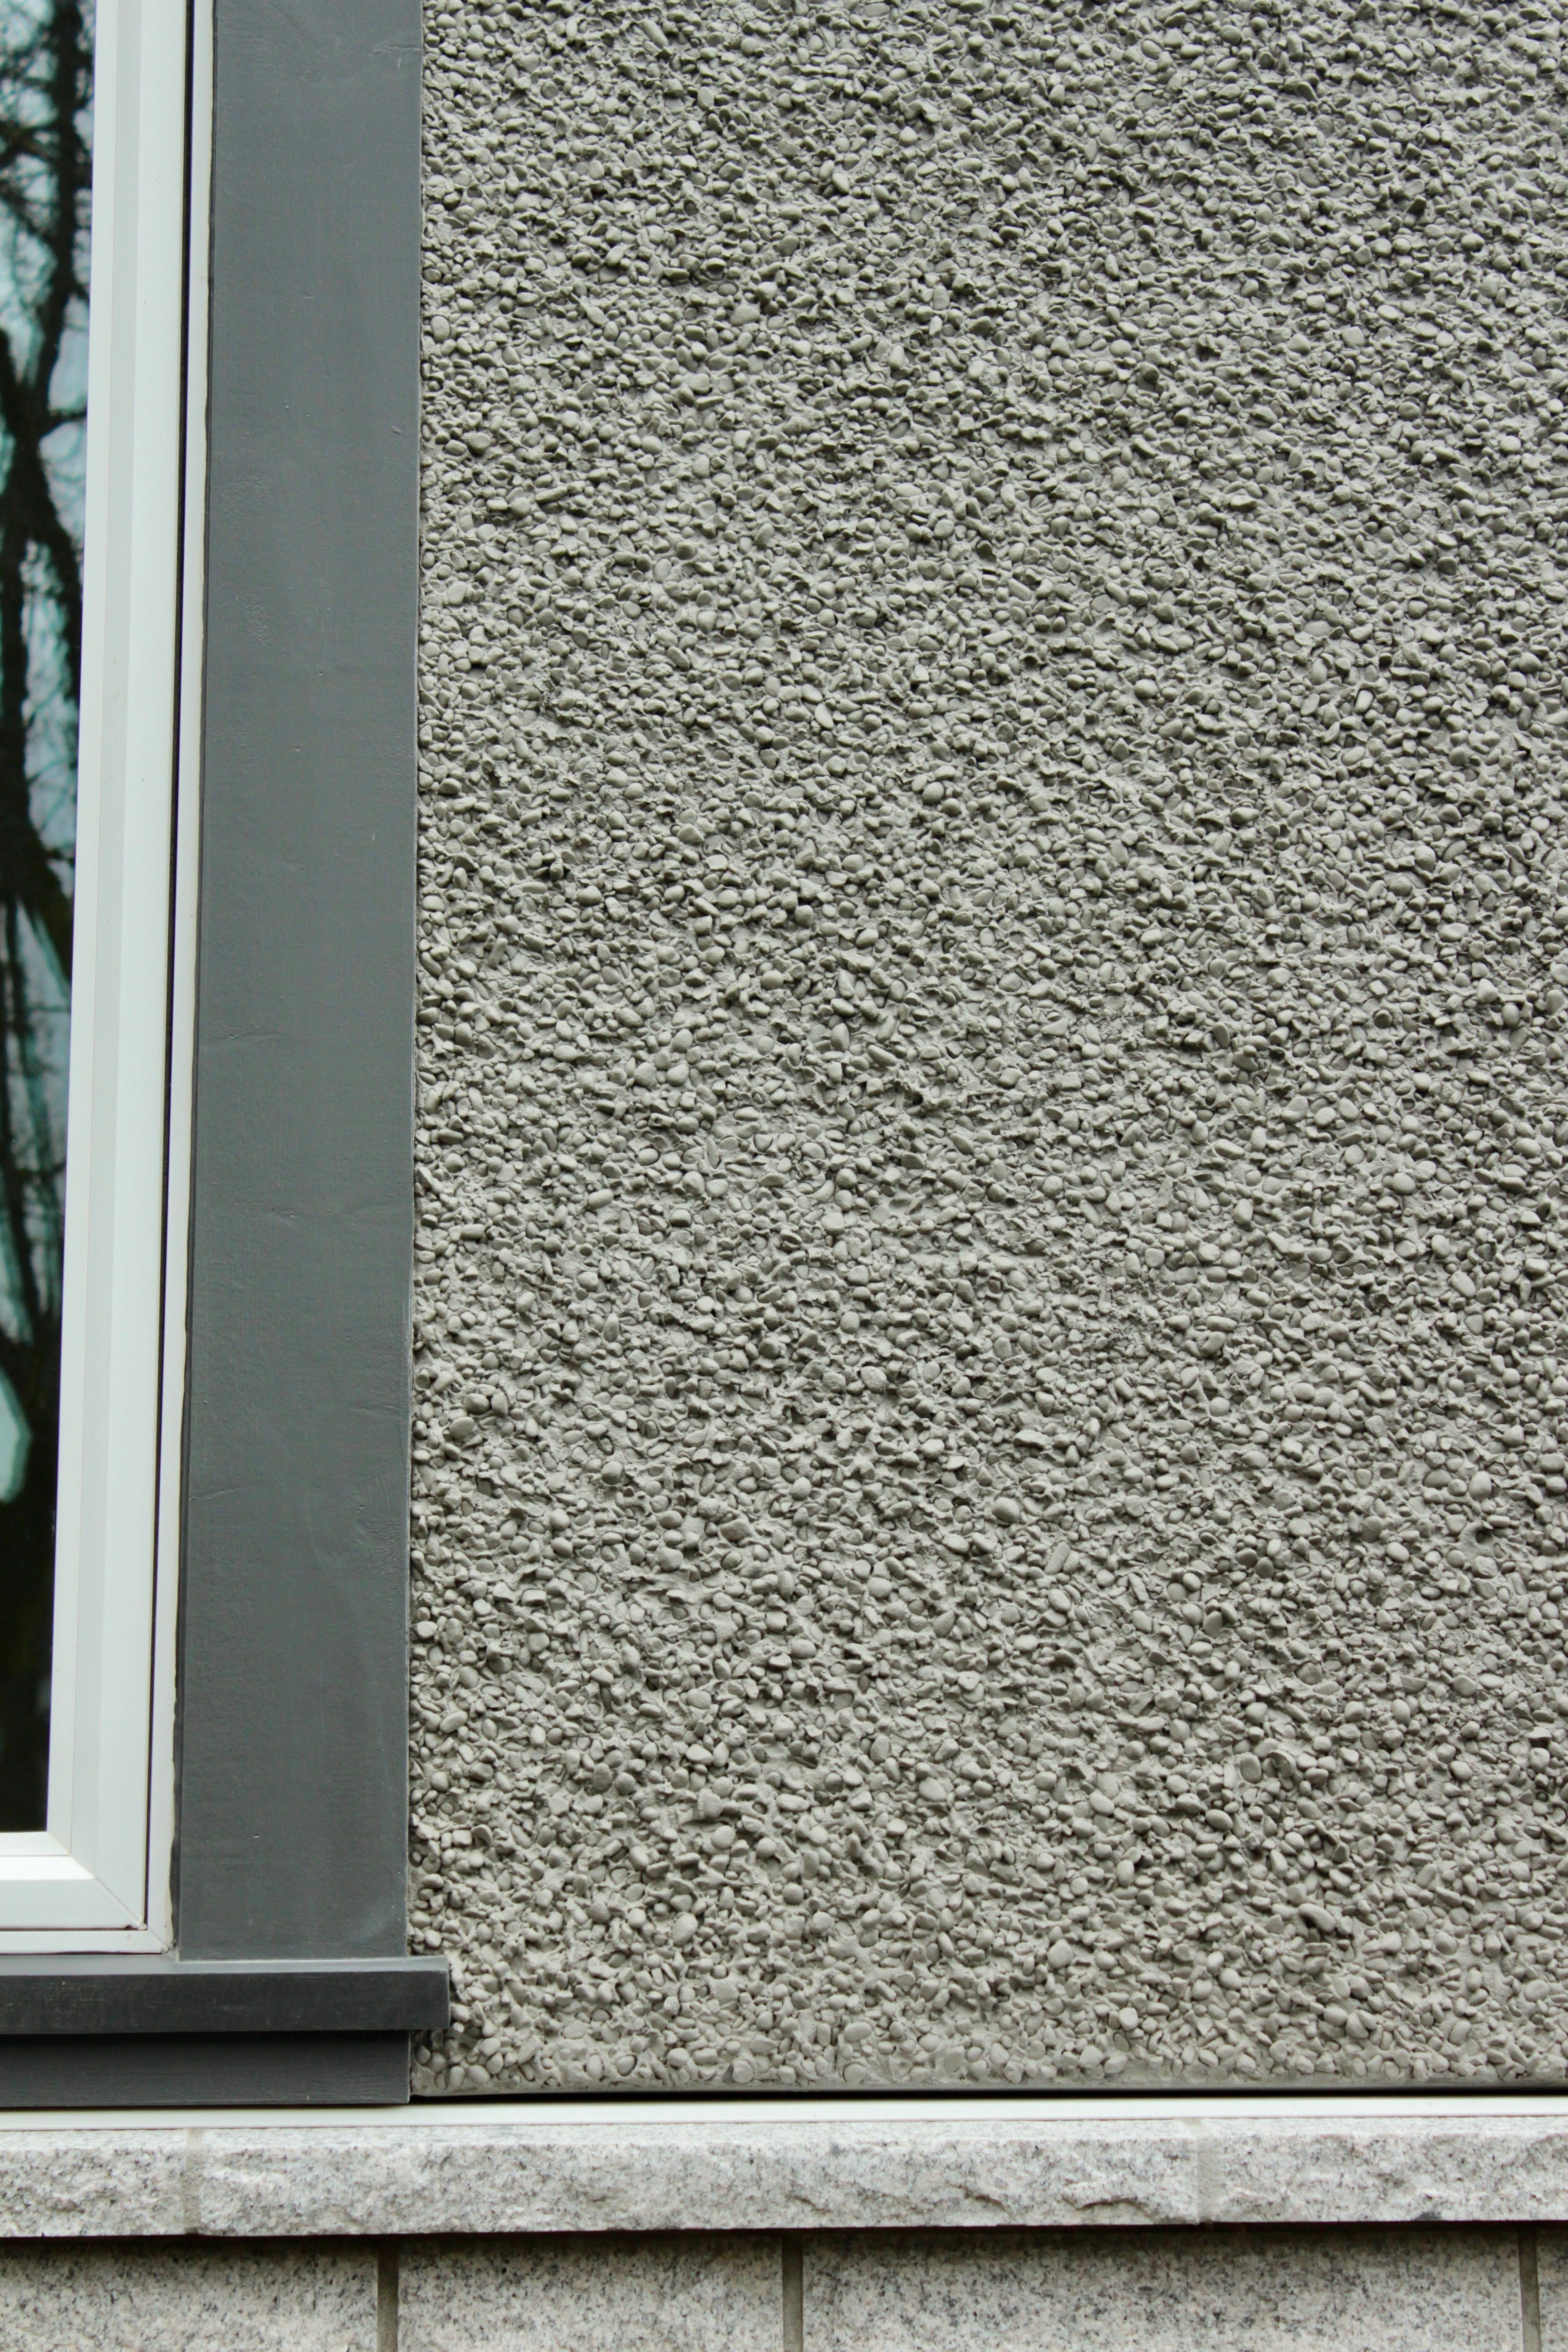 Painted Rock Dash Stucco Finish Gives Your Home A Great Consistent